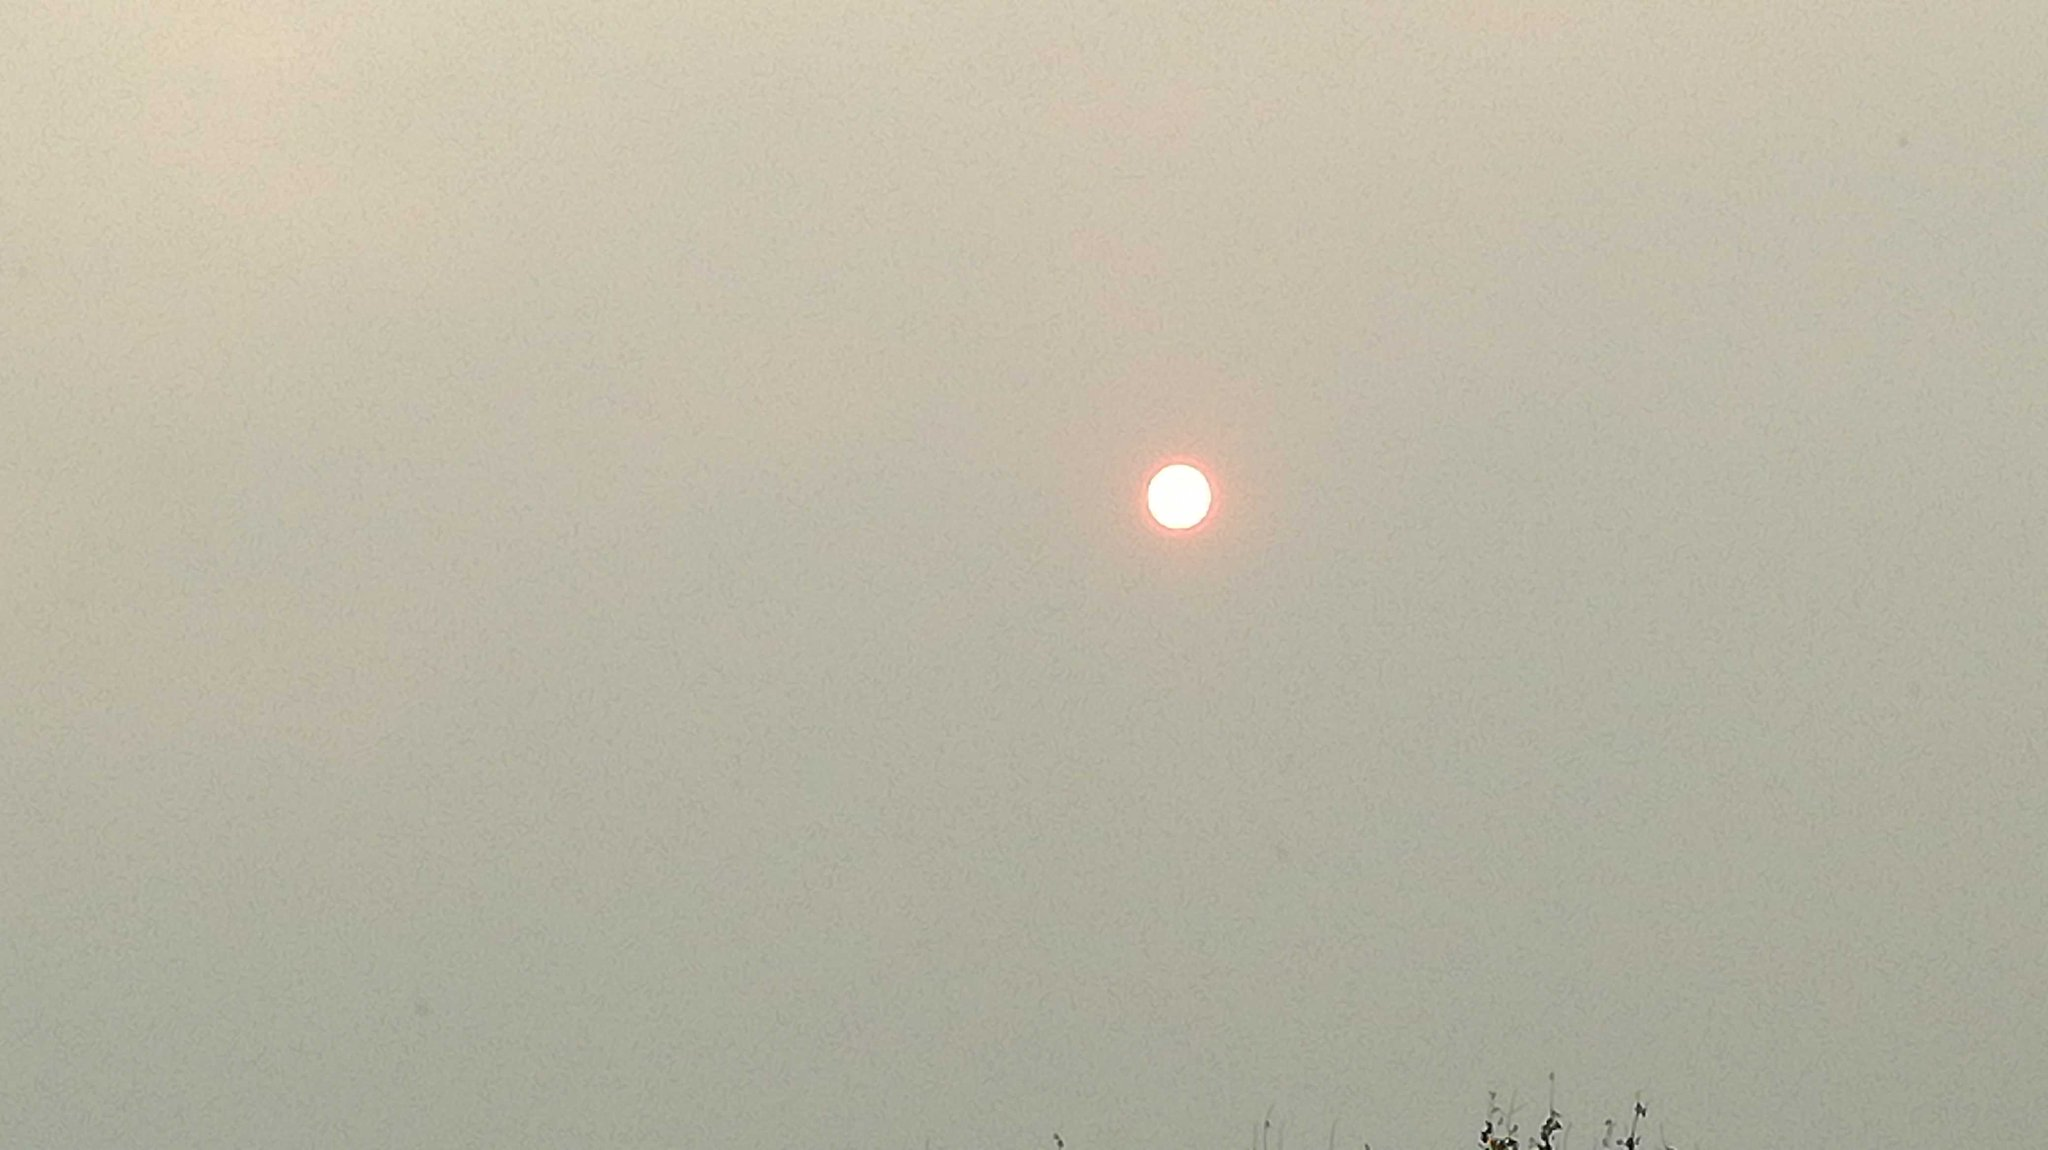 Look up! #redsun over London! Picture doesn't make justice but it's ORANGE! https://t.co/Fnp5gqTfqm